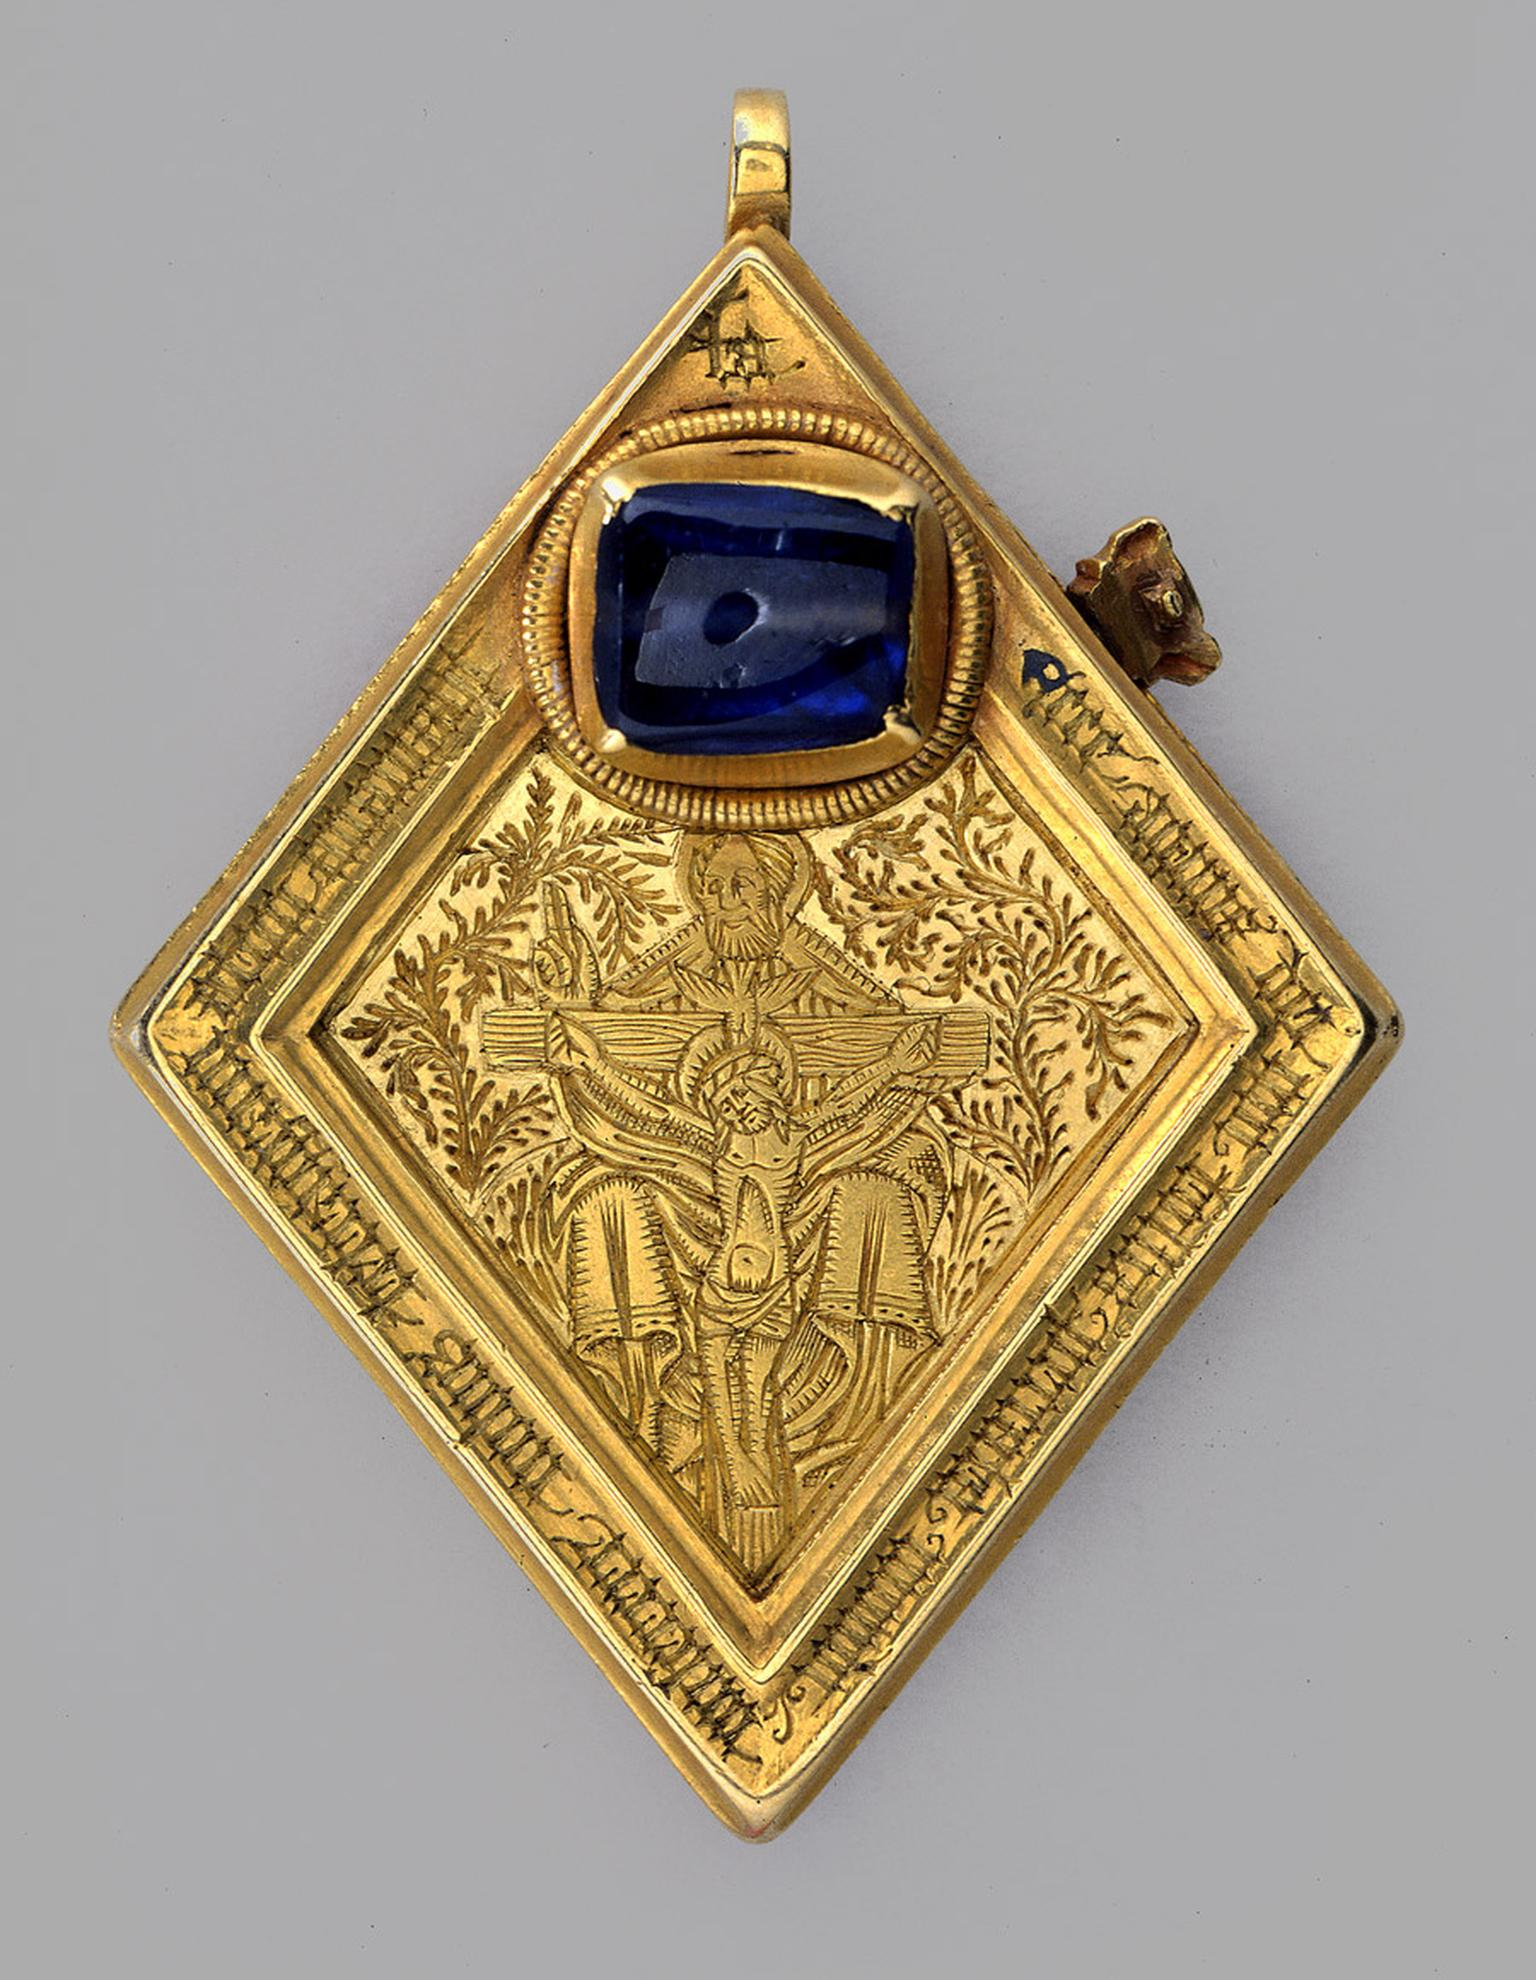 Goldsmiths-The-Middleham-Jewel.jpg